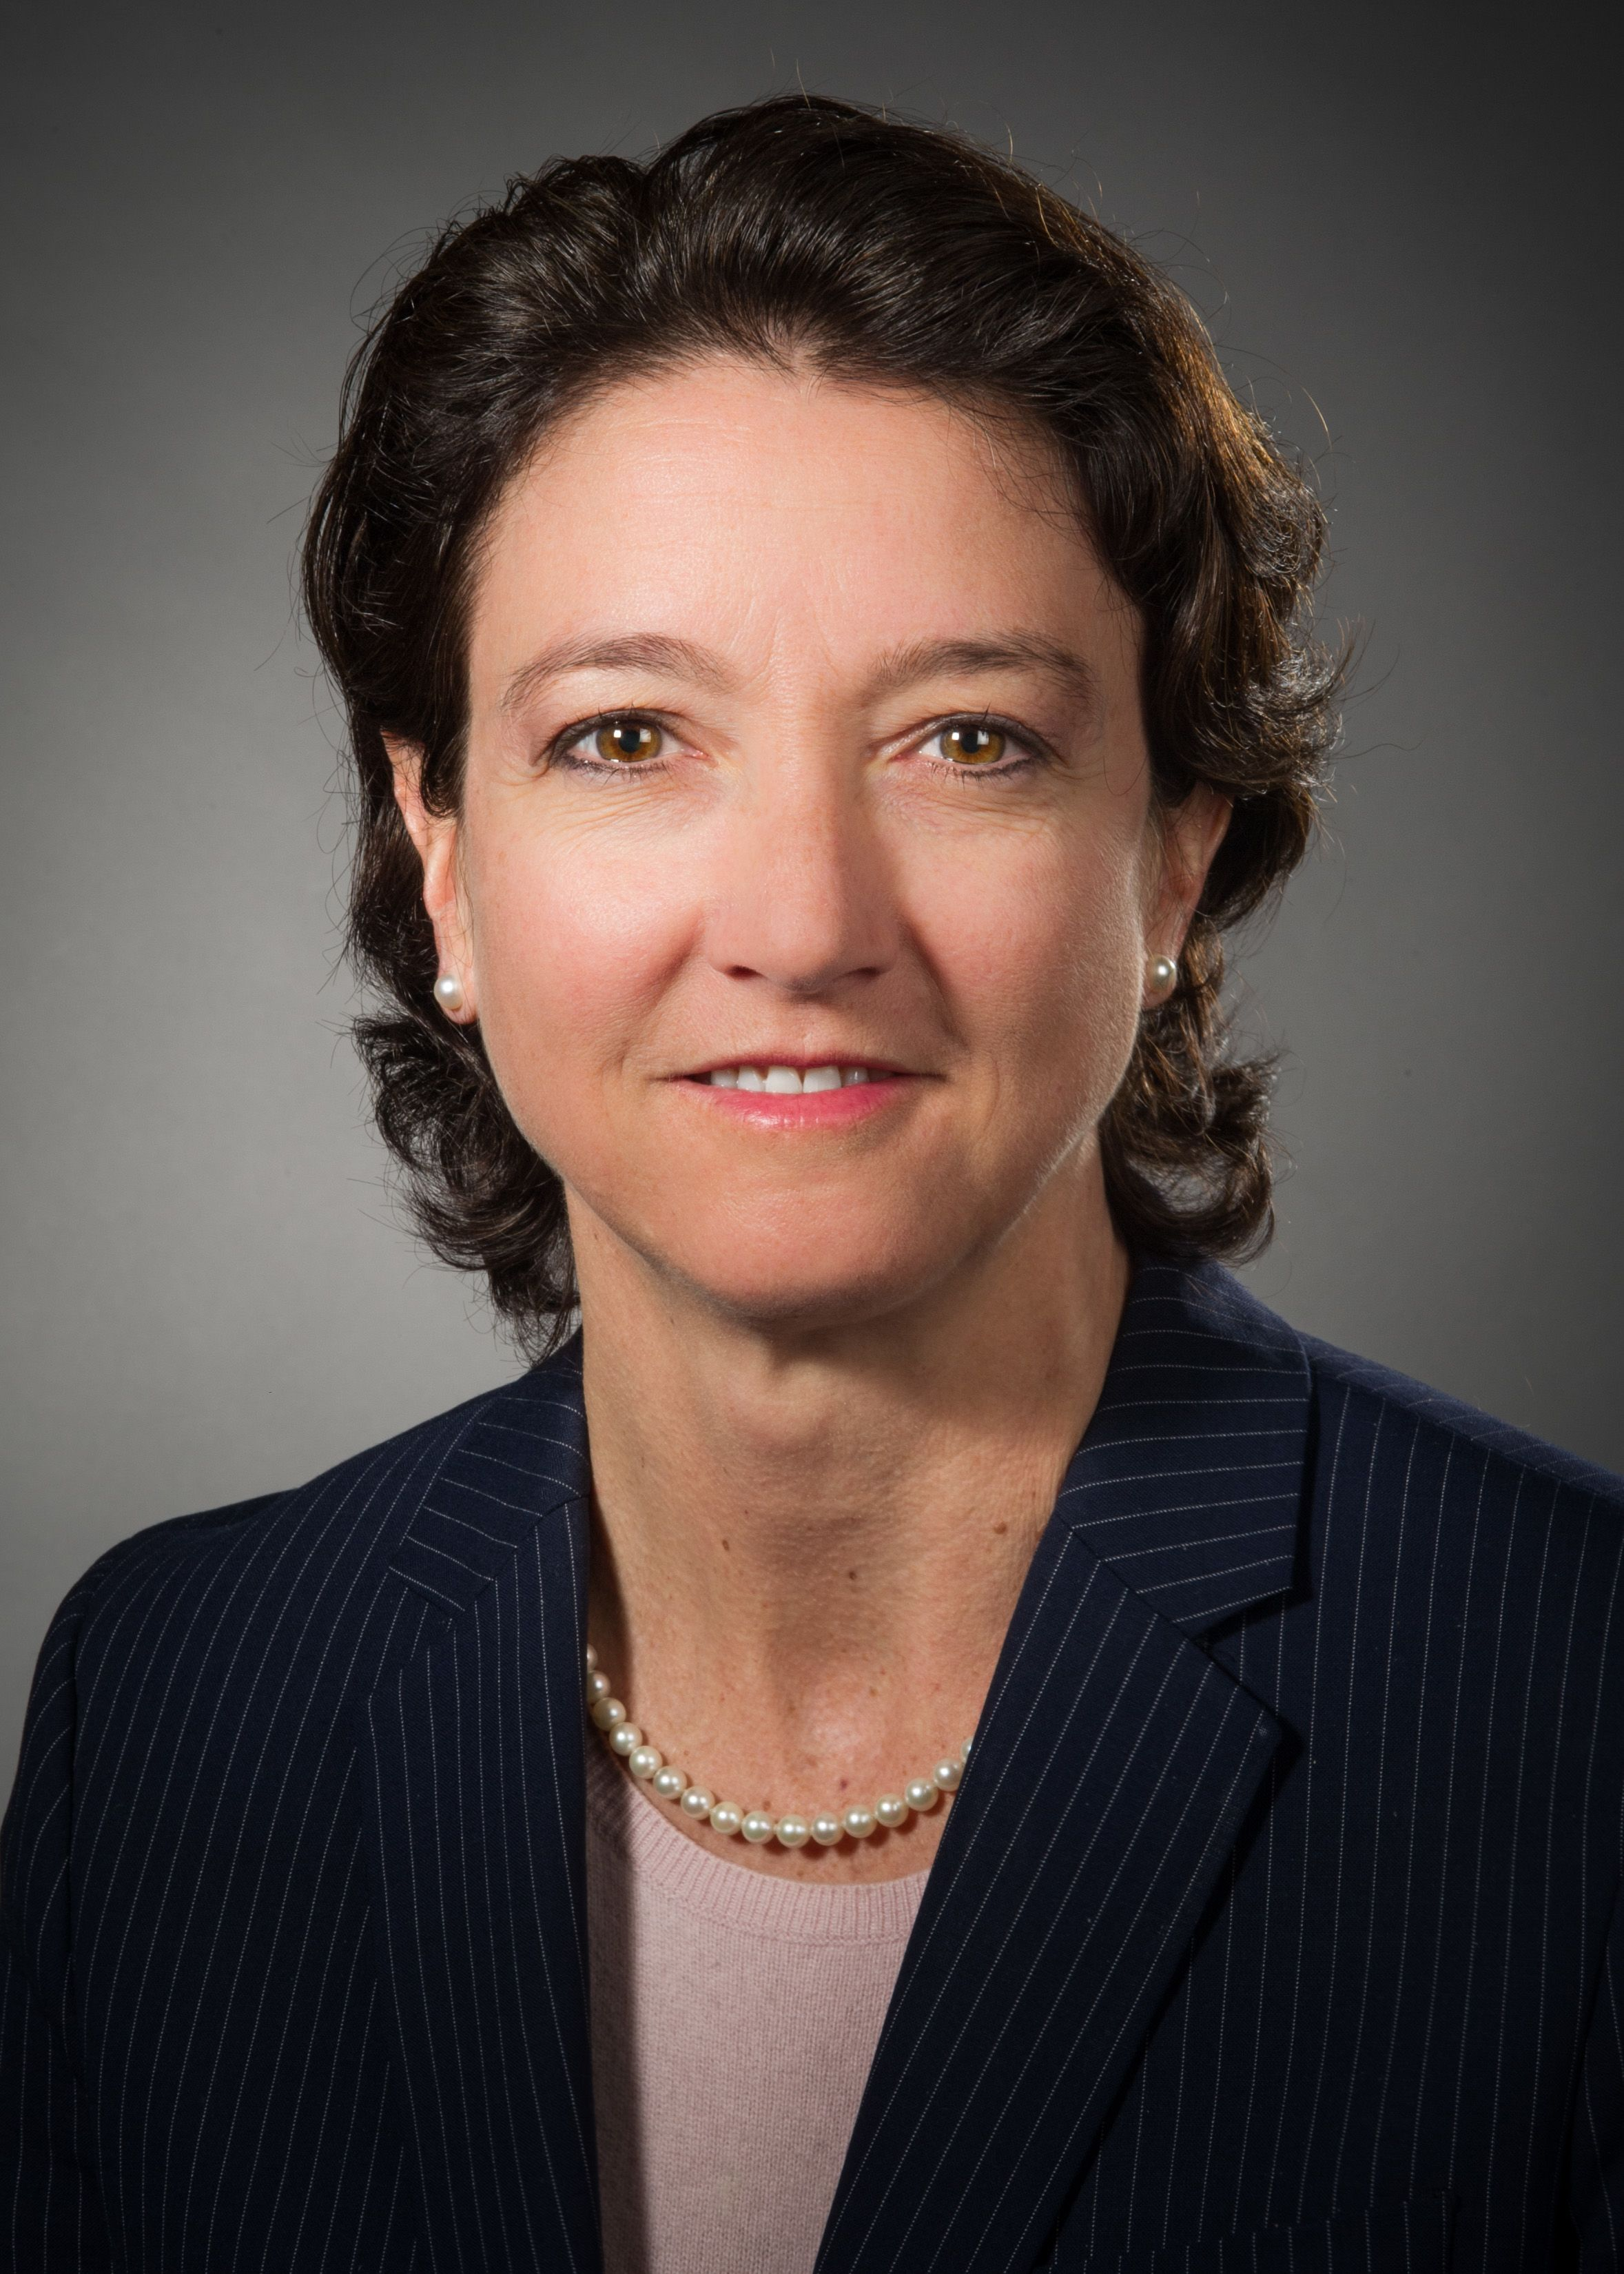 Maria Torroella Carney, MD, wearing a striped suit and purple shirt